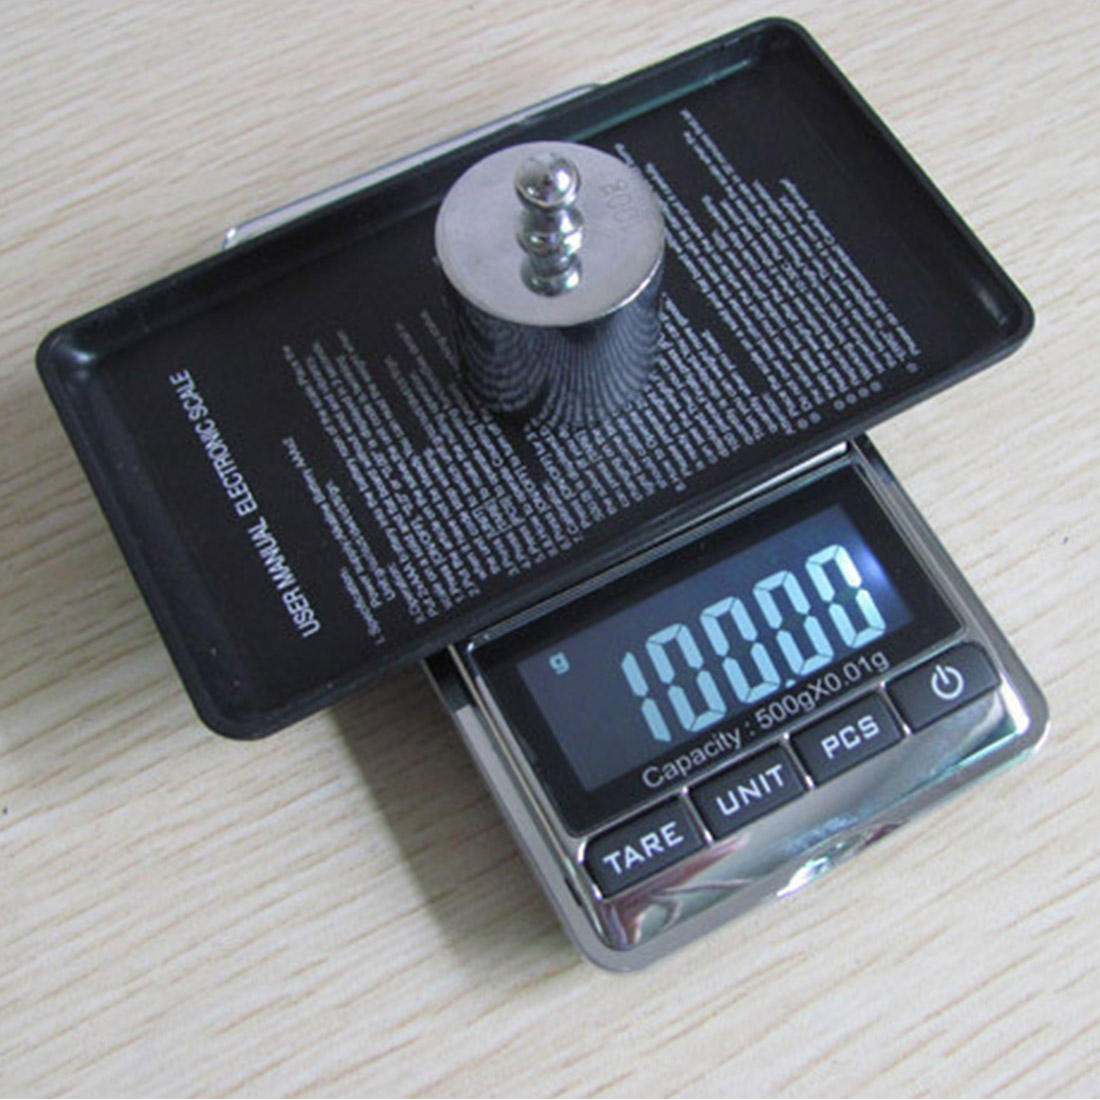 200g/500g 0.01 Accuracy Electronic <font><b>Scale</b></font> Precision Portable Pocket LCD <font><b>Digital</b></font> Jewelry <font><b>Scales</b></font> <font><b>Weight</b></font> Balance Kitchen Gram <font><b>Scale</b></font> image